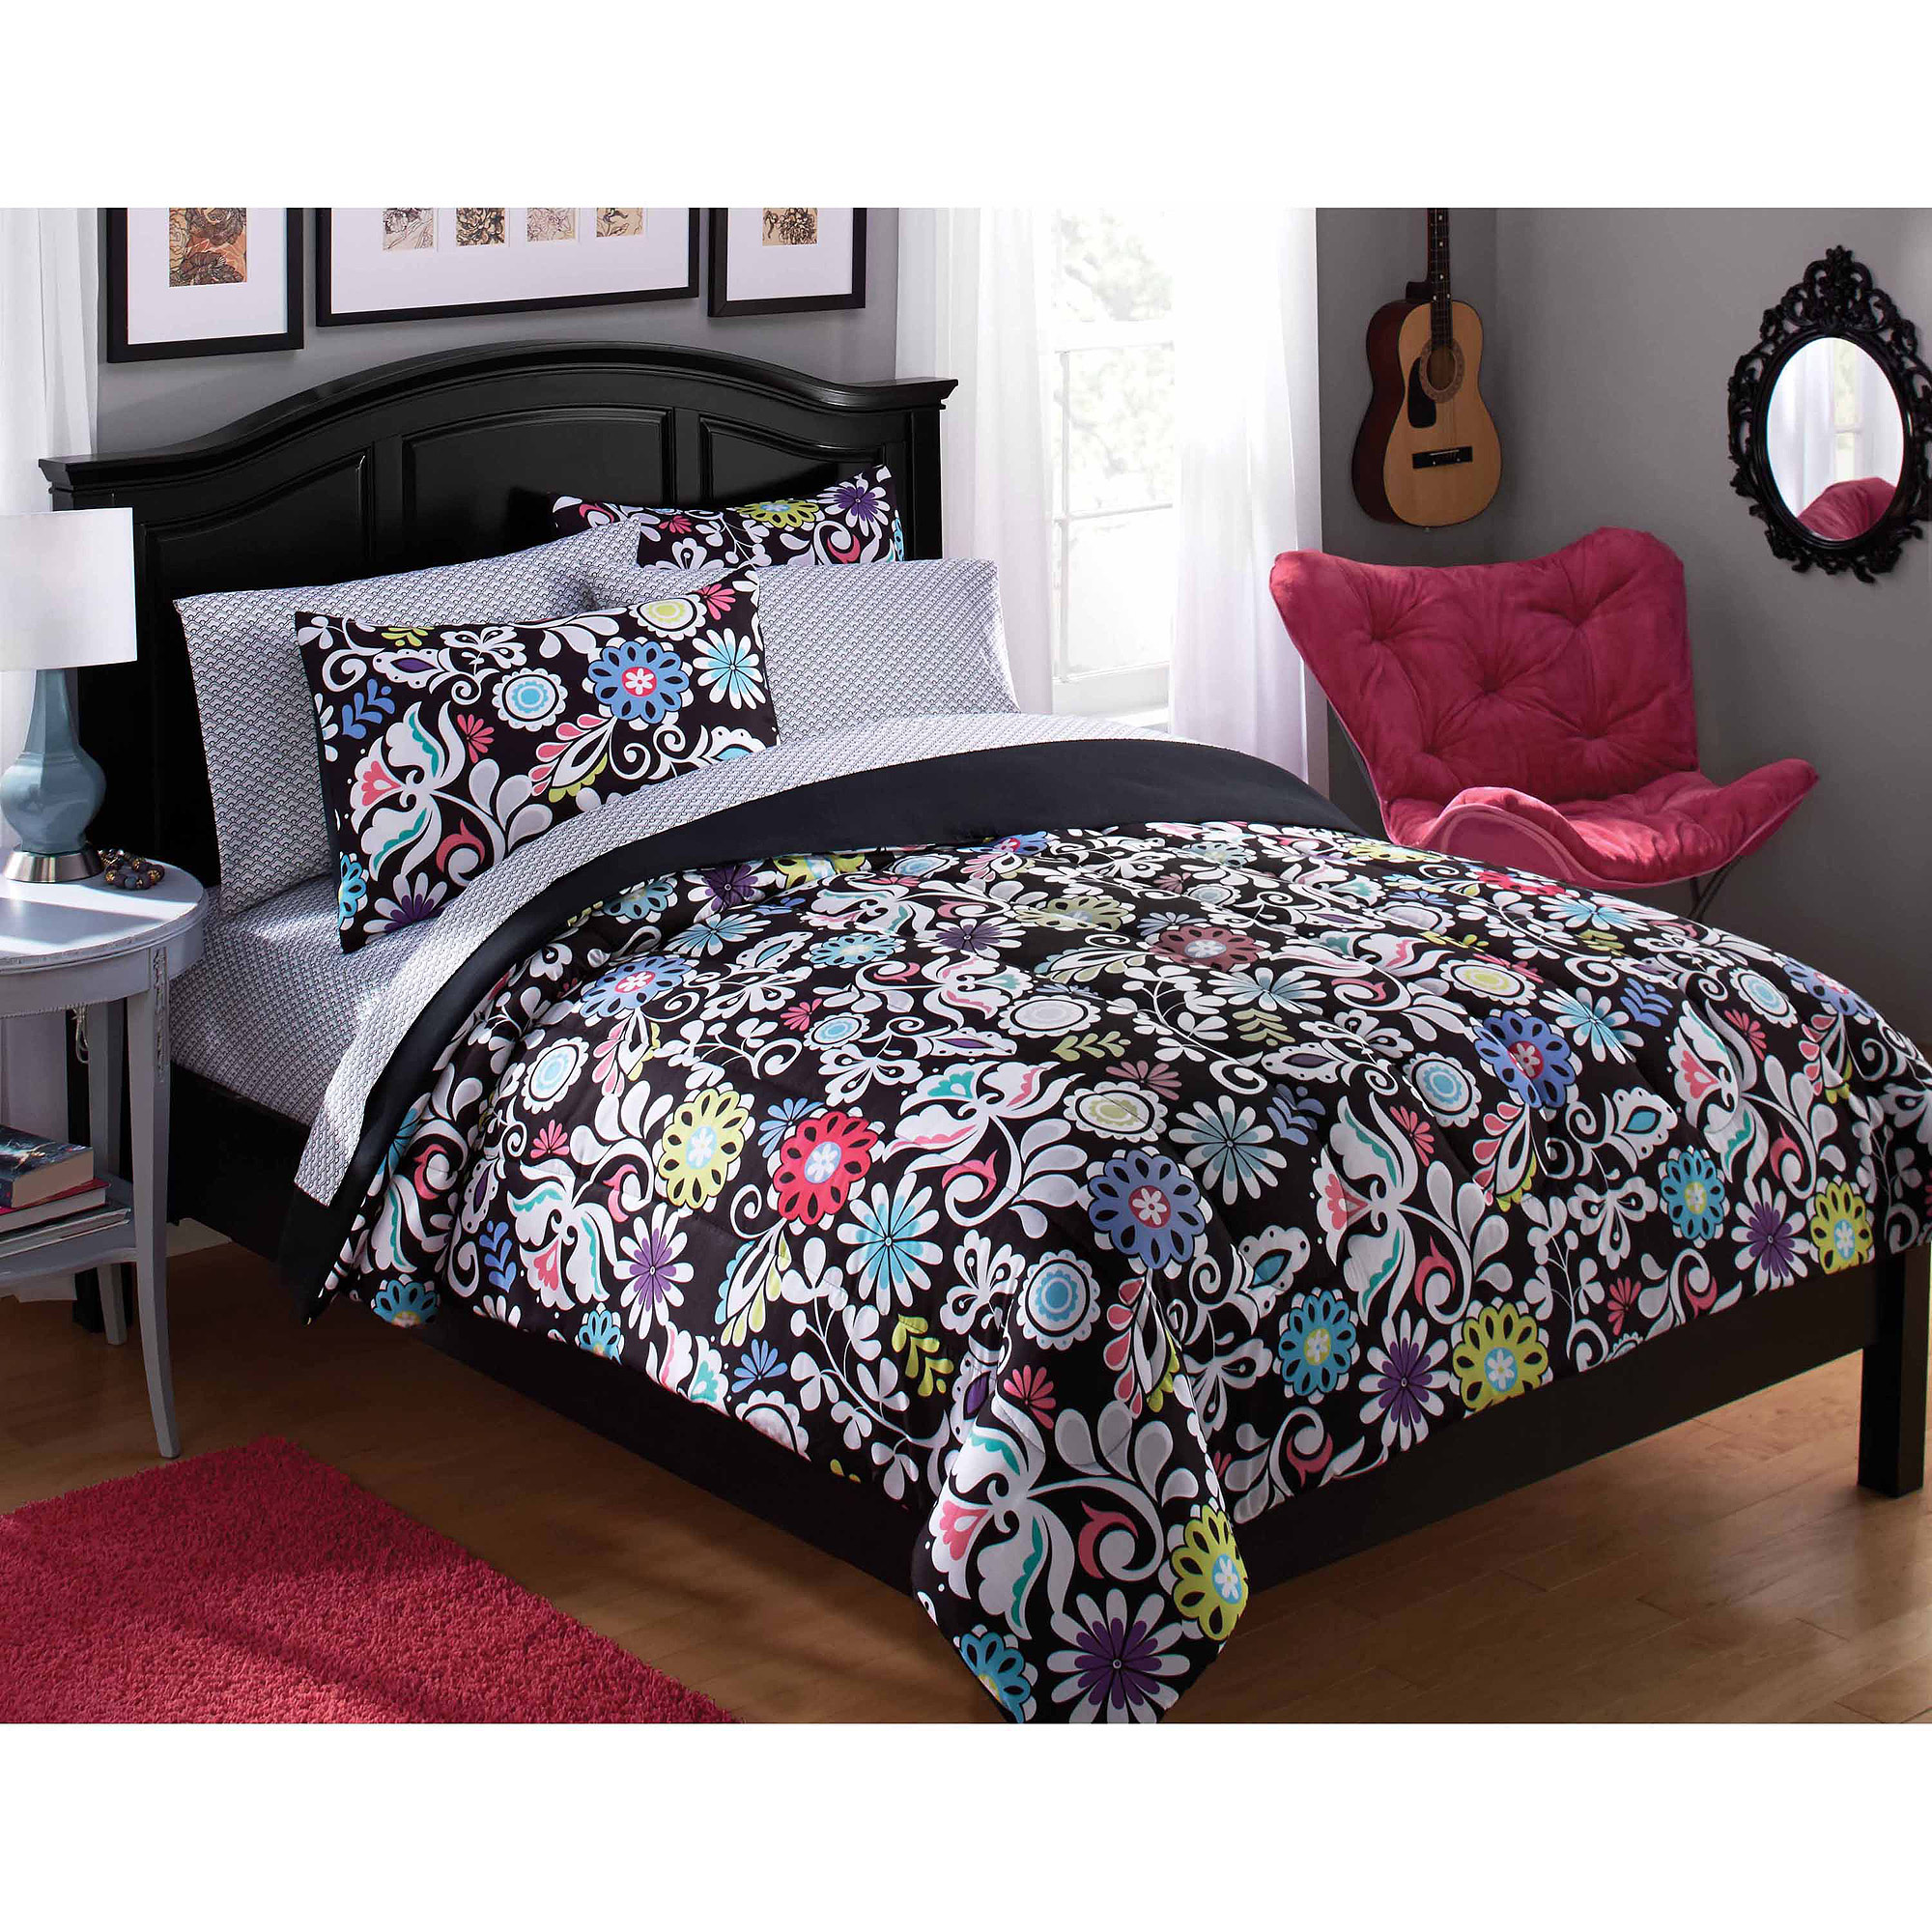 l bag walmartcom a bedding your kids view comforters twin zone set for in zebra larger bed comforter